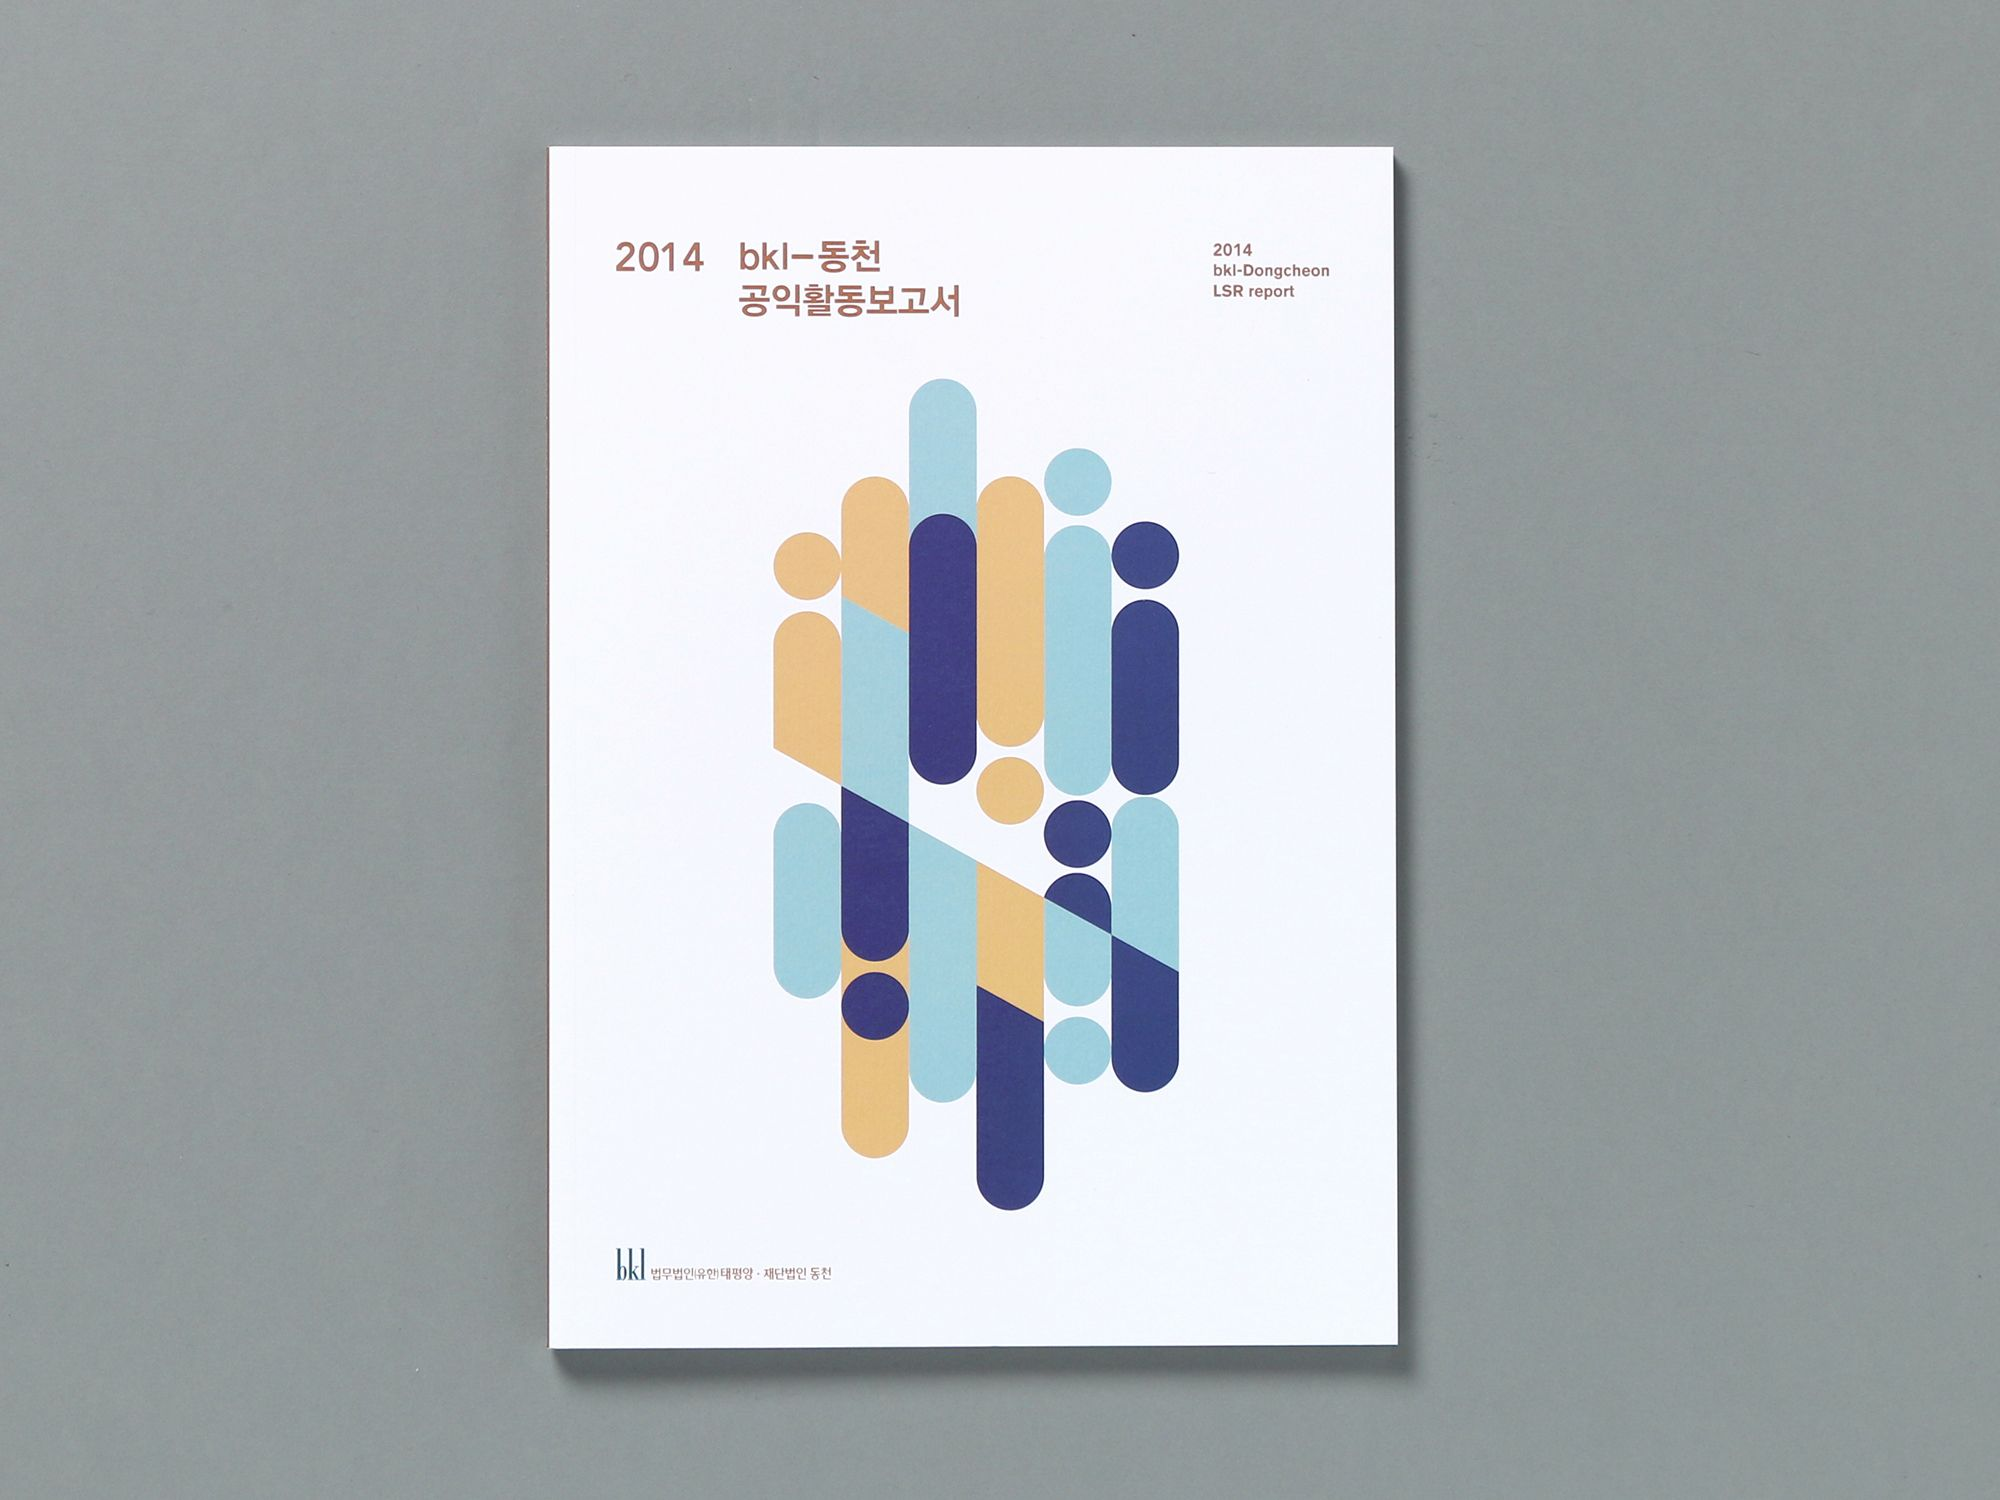 Book Cover Design Reference : 동천 공익활동 보고서 e d i t o r a l 편집 디자인 포스터